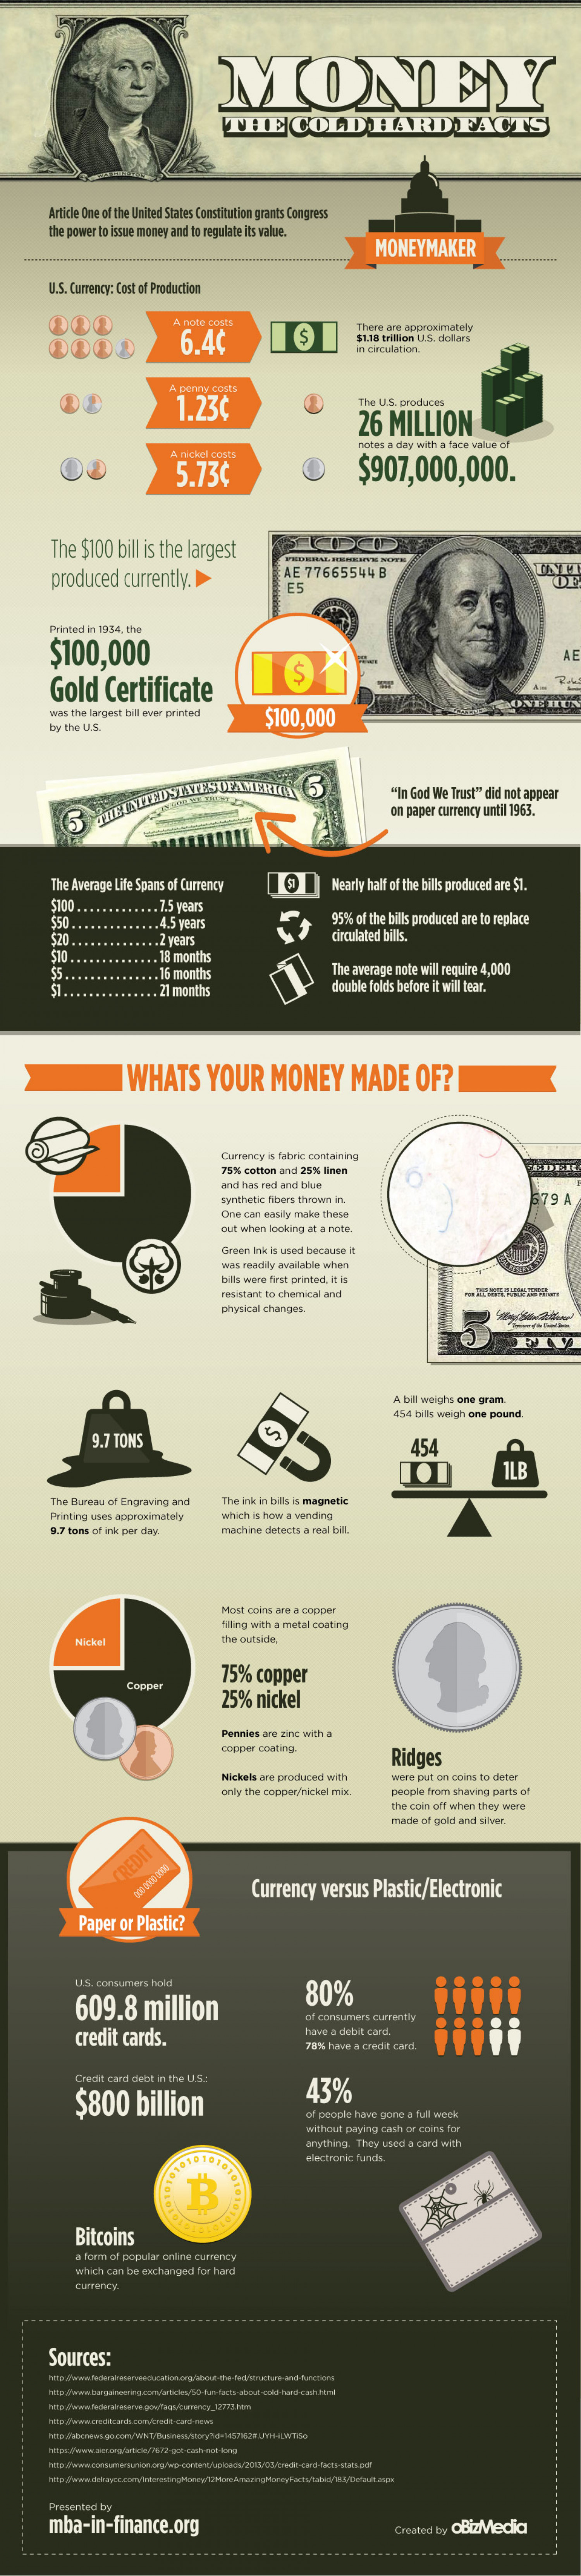 Money: The Cold Hard Facts Infographic